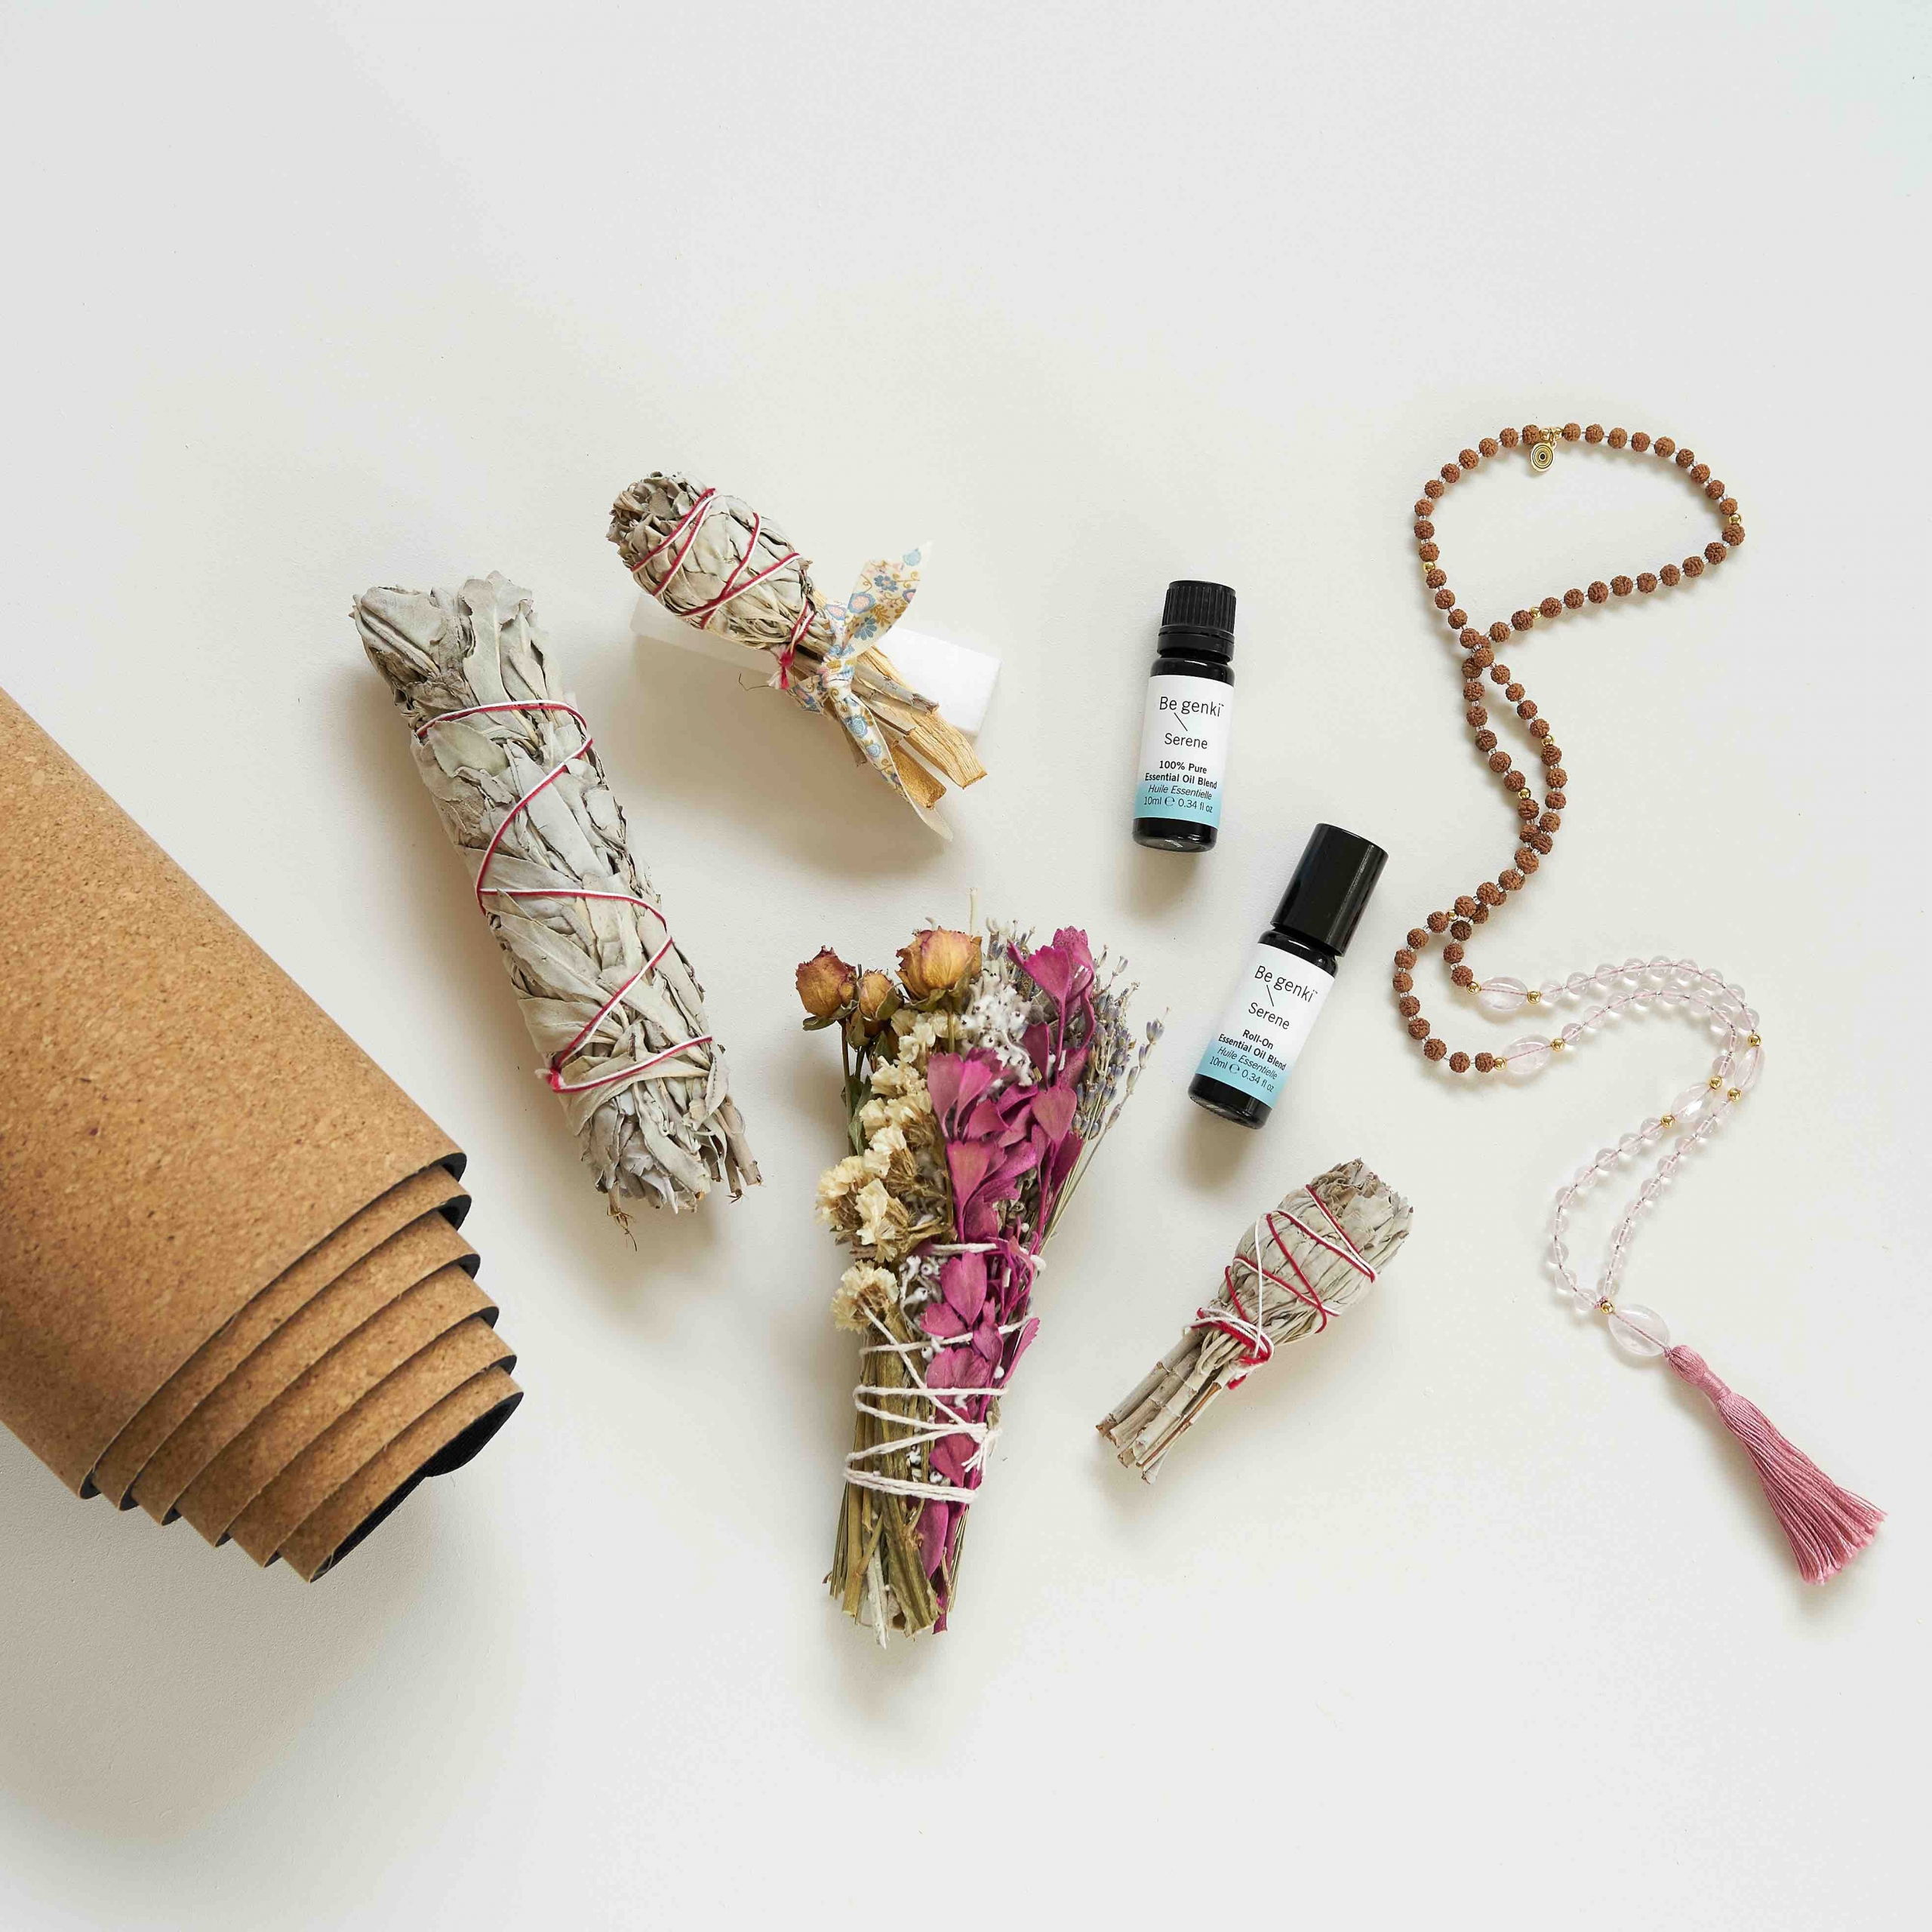 Smudging supplies, yoga mat, mala and essential oils on table